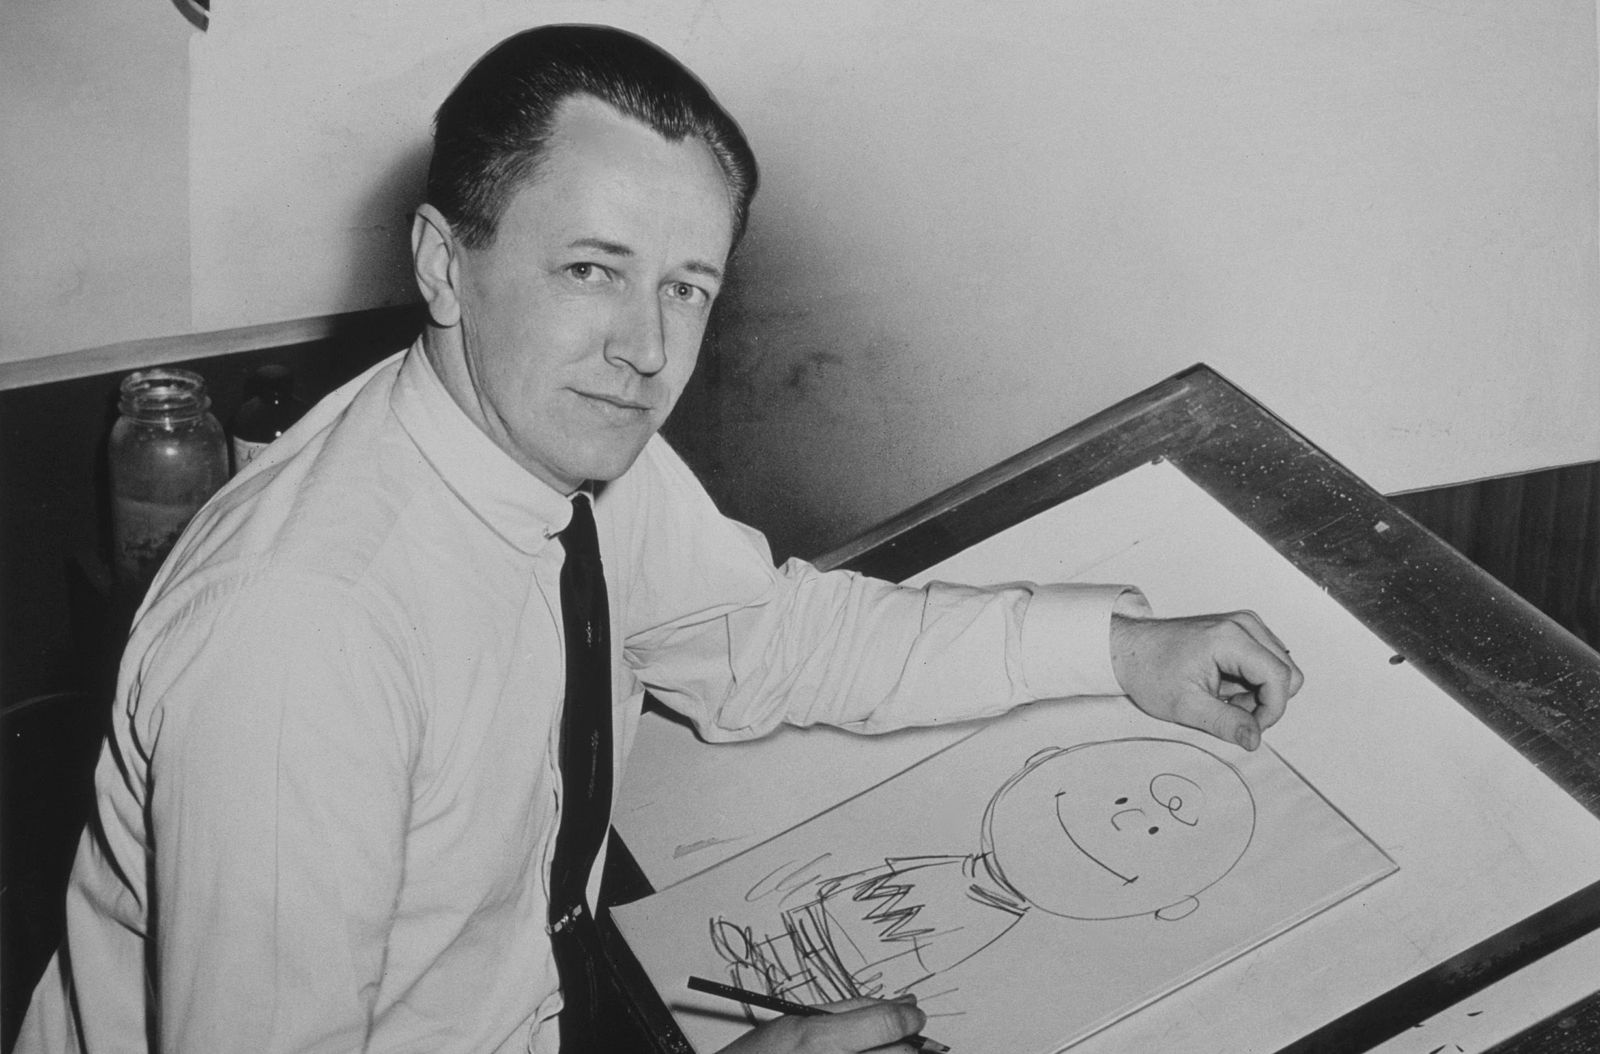 photo of charles schulz with a drawing of charlie brown